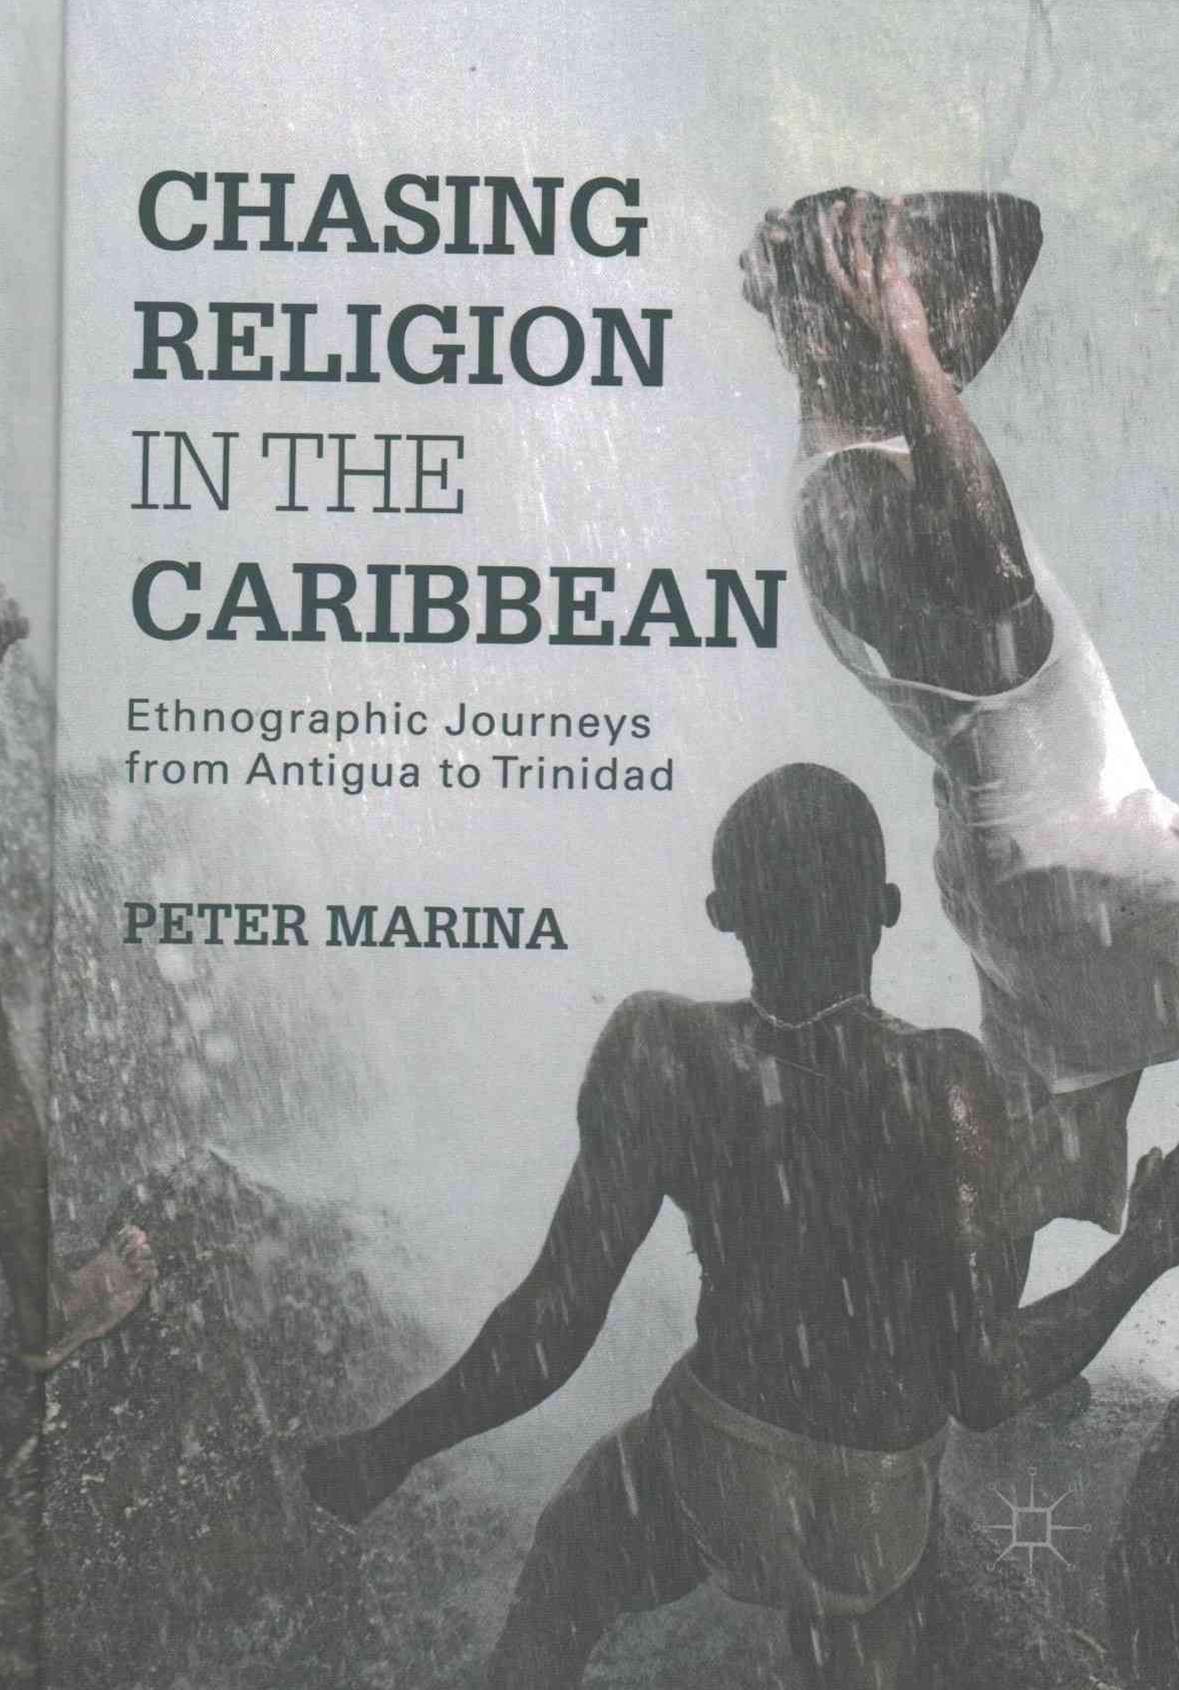 Chasing Religion in the Caribbean